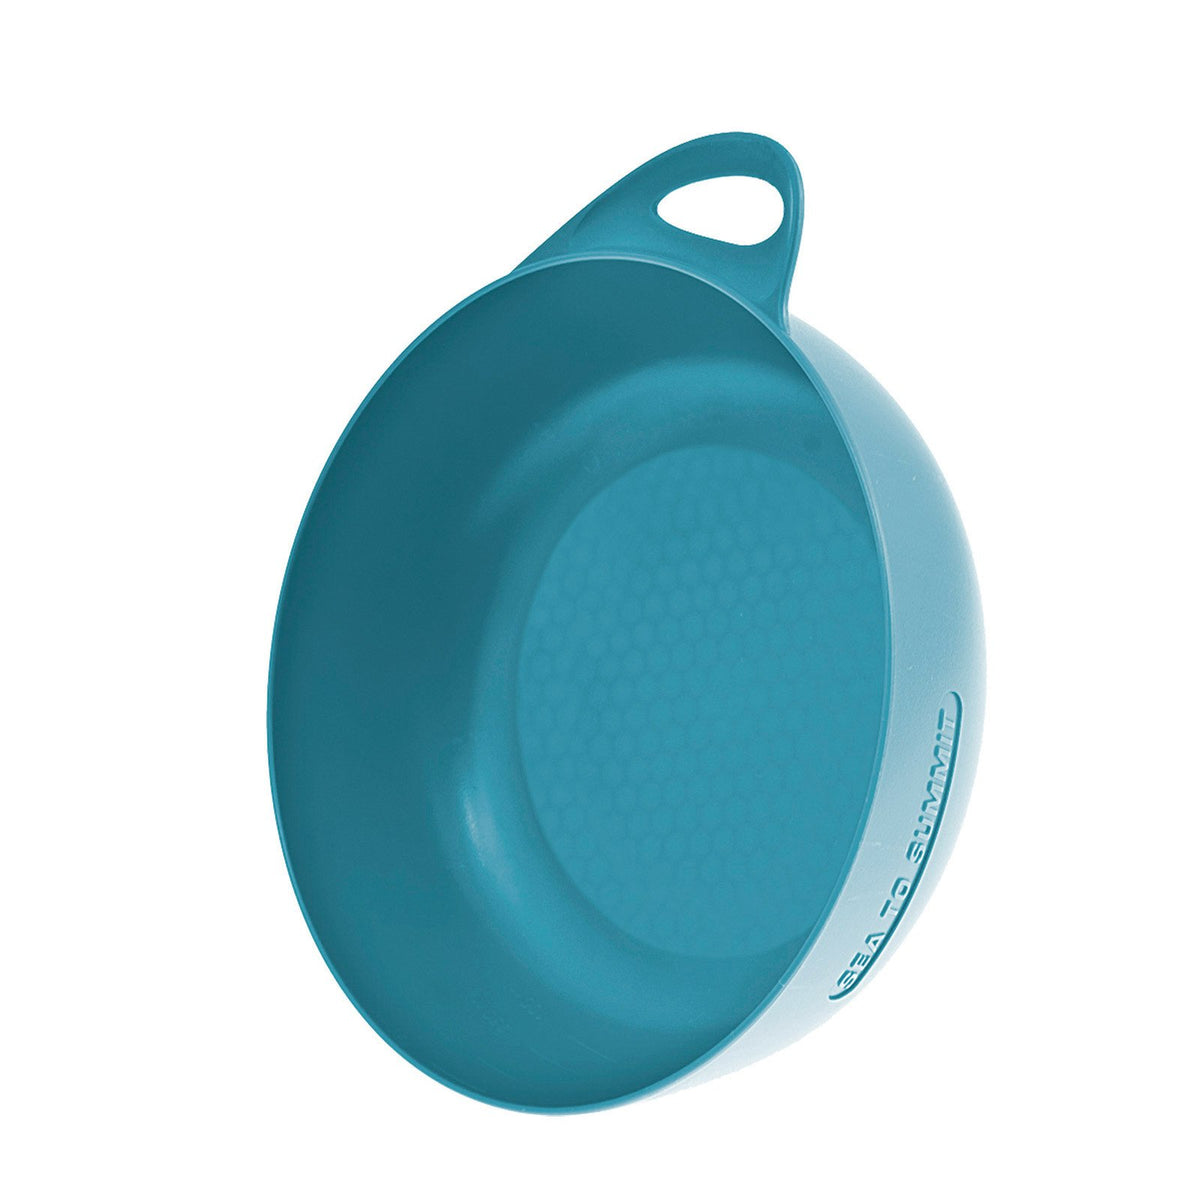 Sea to Summit Delta camping Bowl, in blue colour